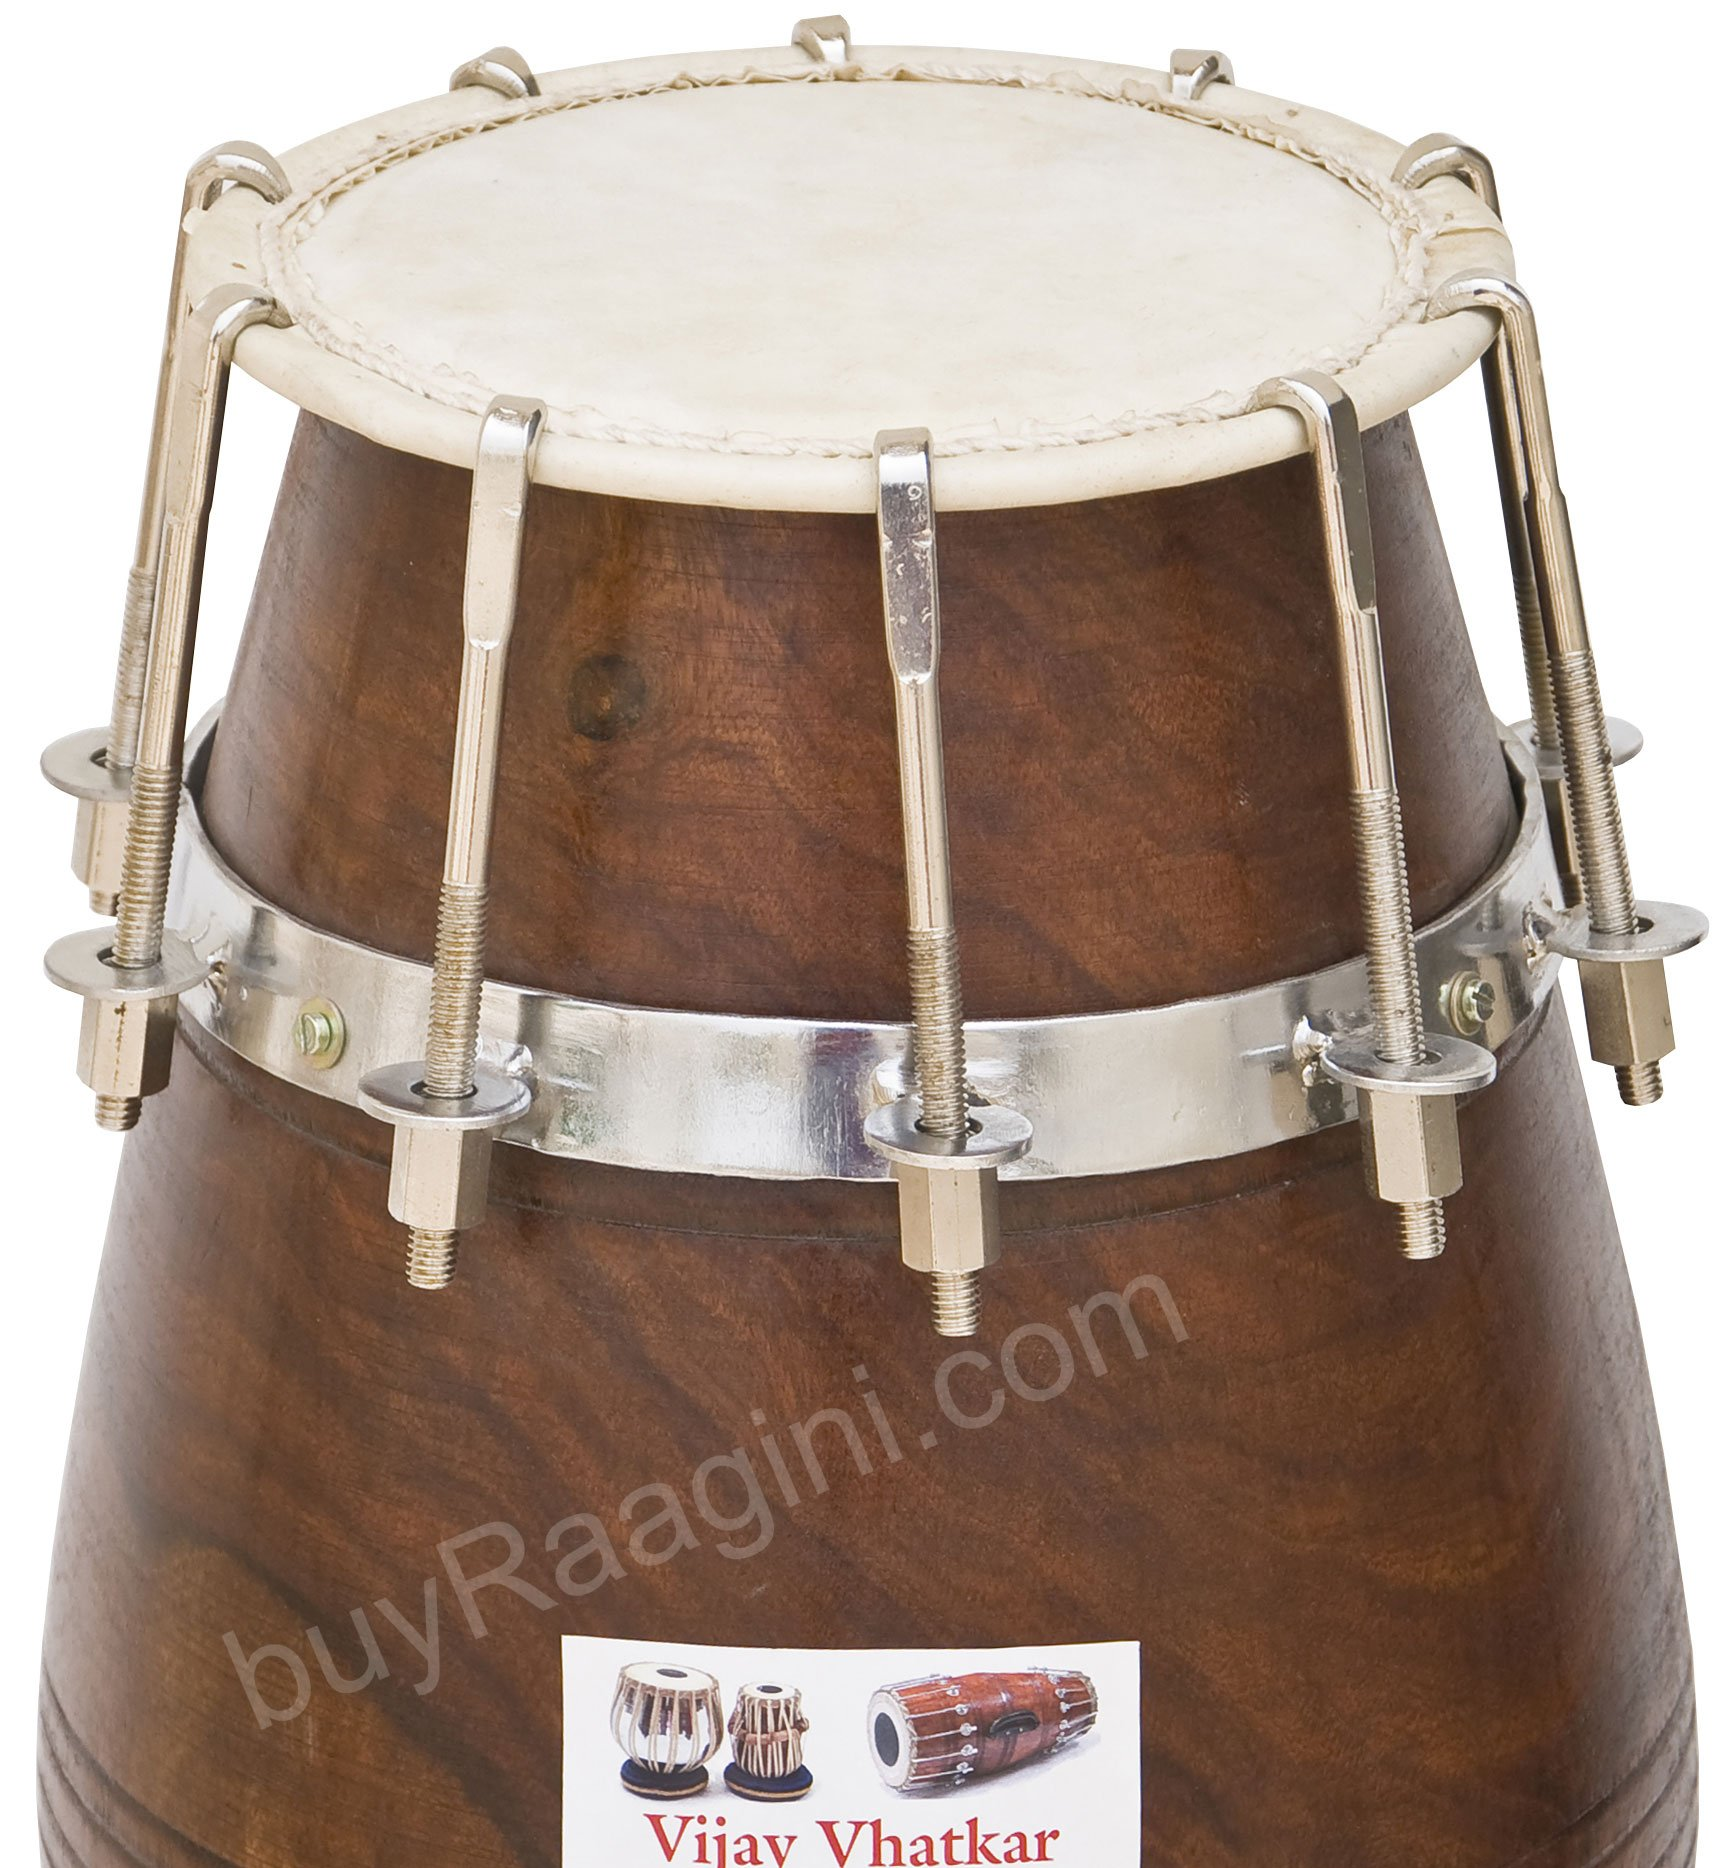 Vhatkar Dholak Drum, Sheesham Wood, Natural, Bolt Tuned, Padded Bag, Spanner, Dholki/Dholaki (PDI-DIH) by VIJAY VHATKAR for buyRaagini.com